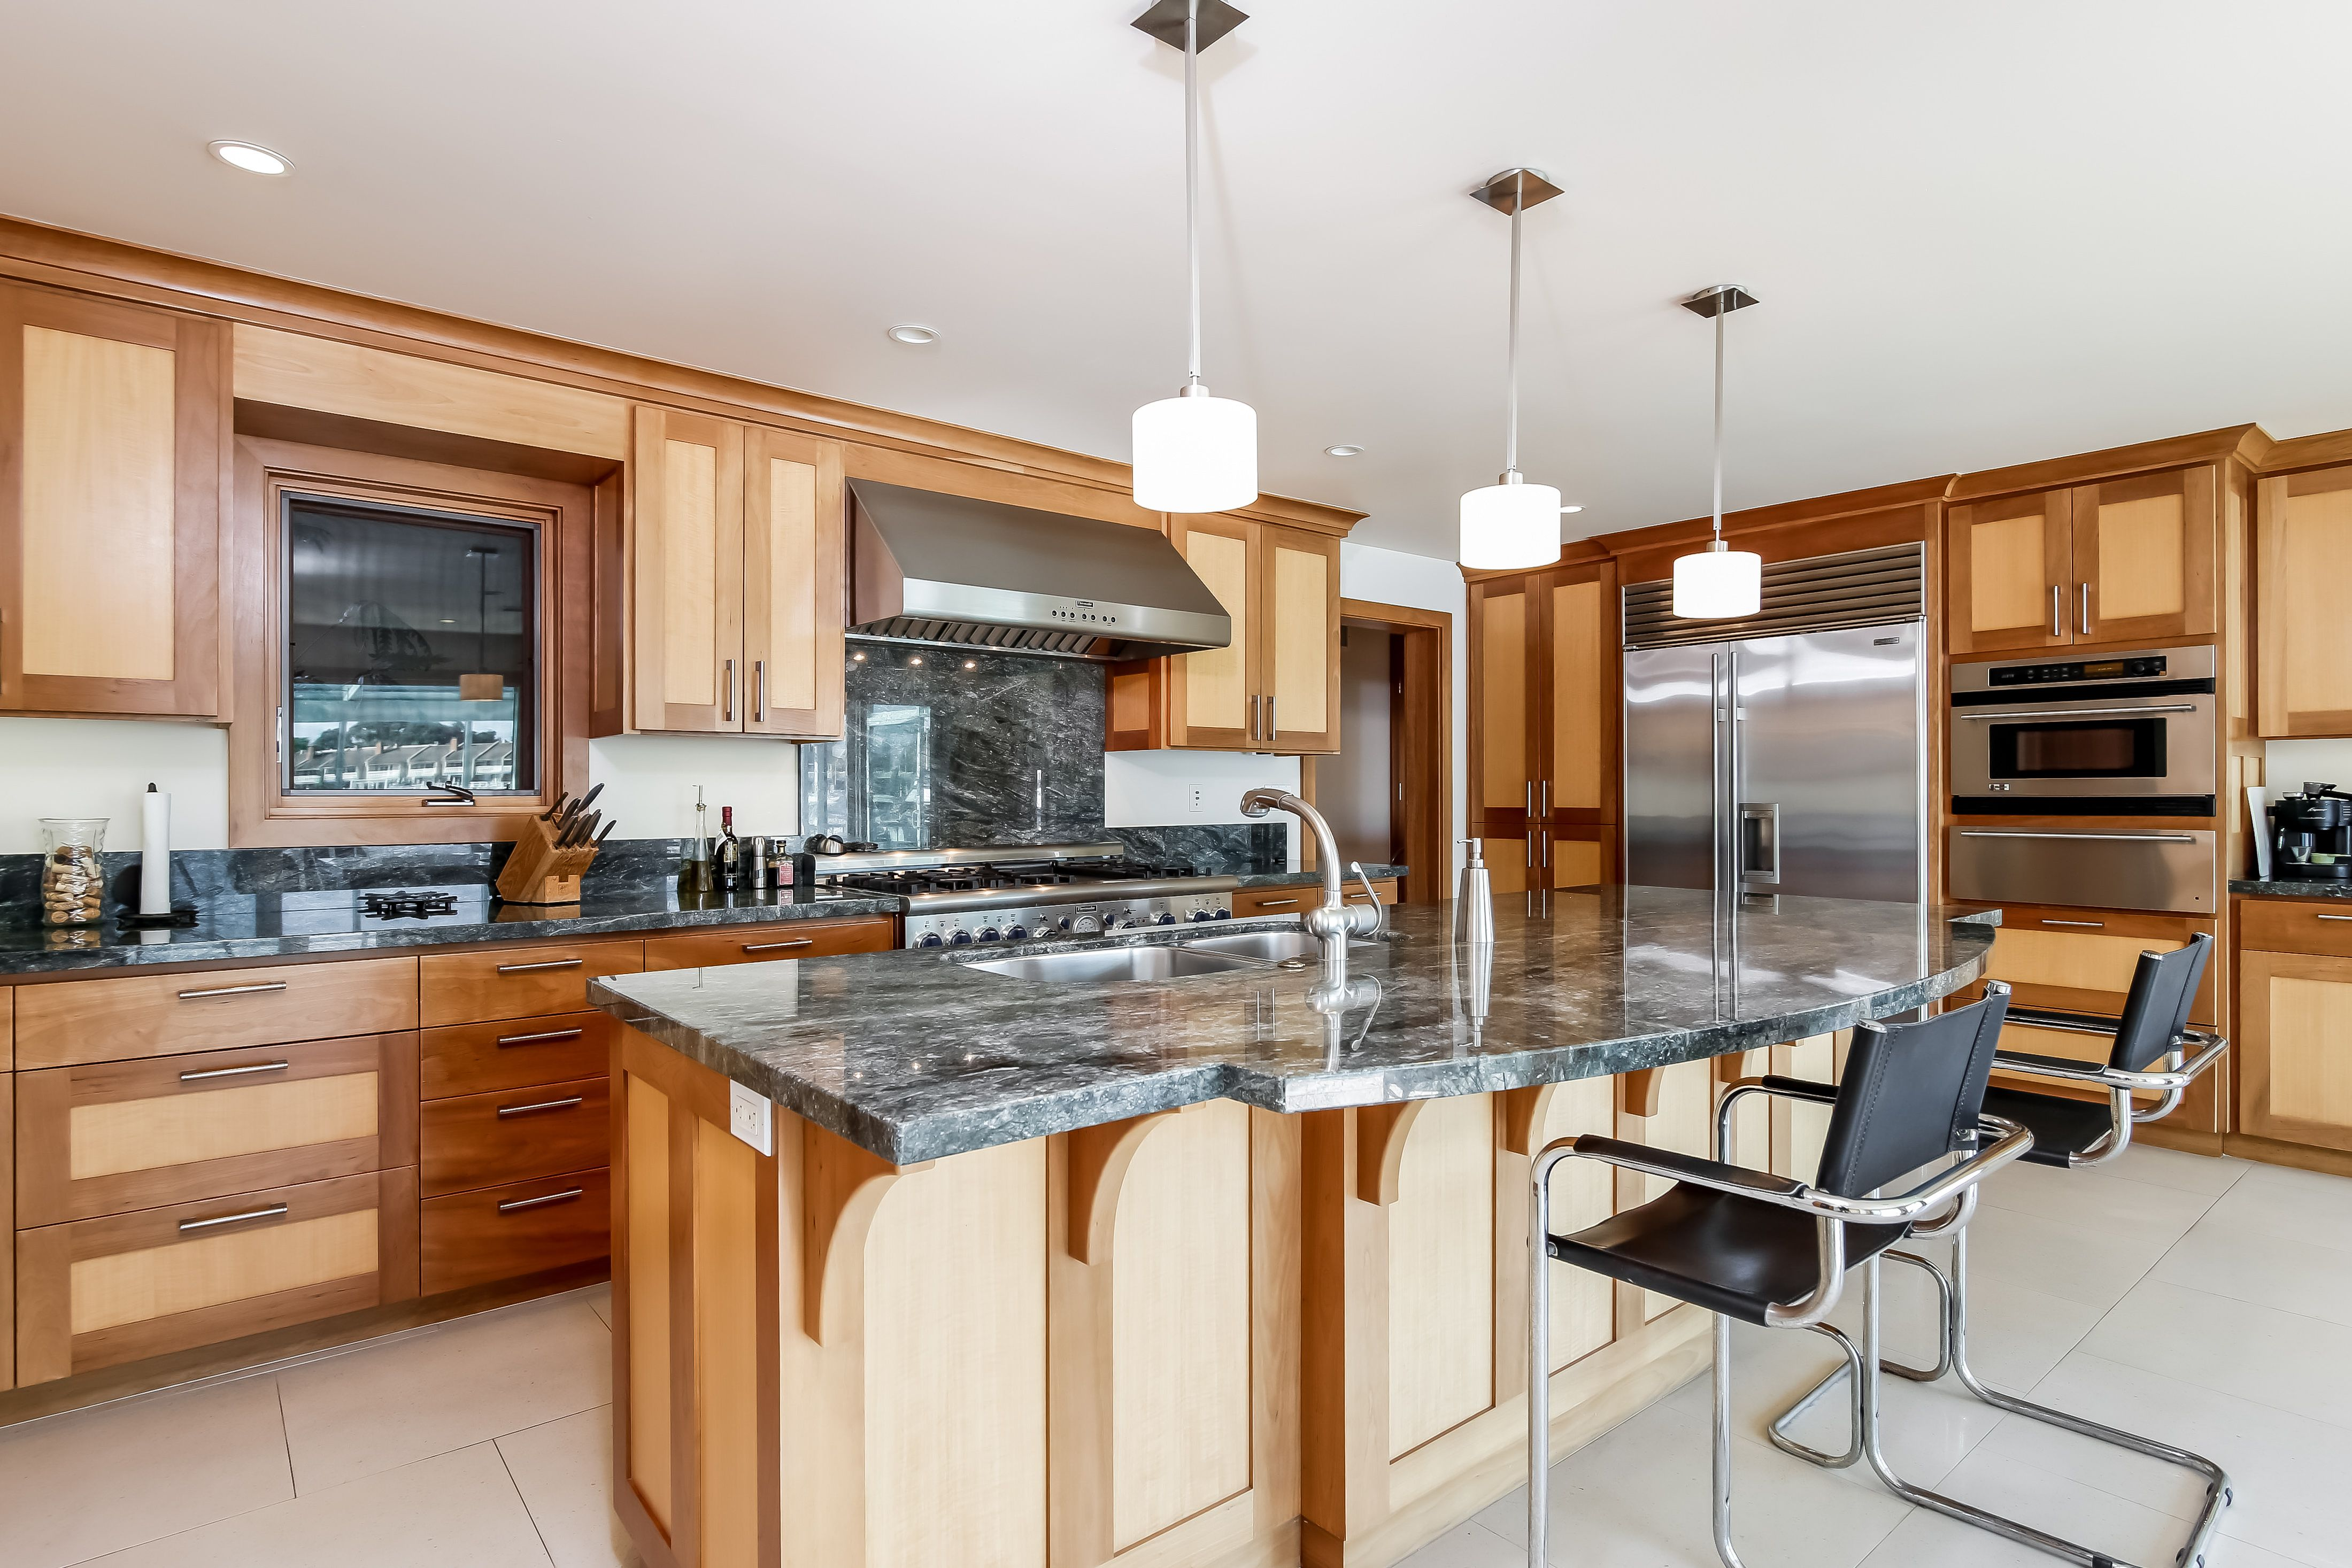 16412 Ardsley Circle, Huntington Beach Property Listing: MLS #OC18021504.  Extra Large State Of The Art Kitchen ...